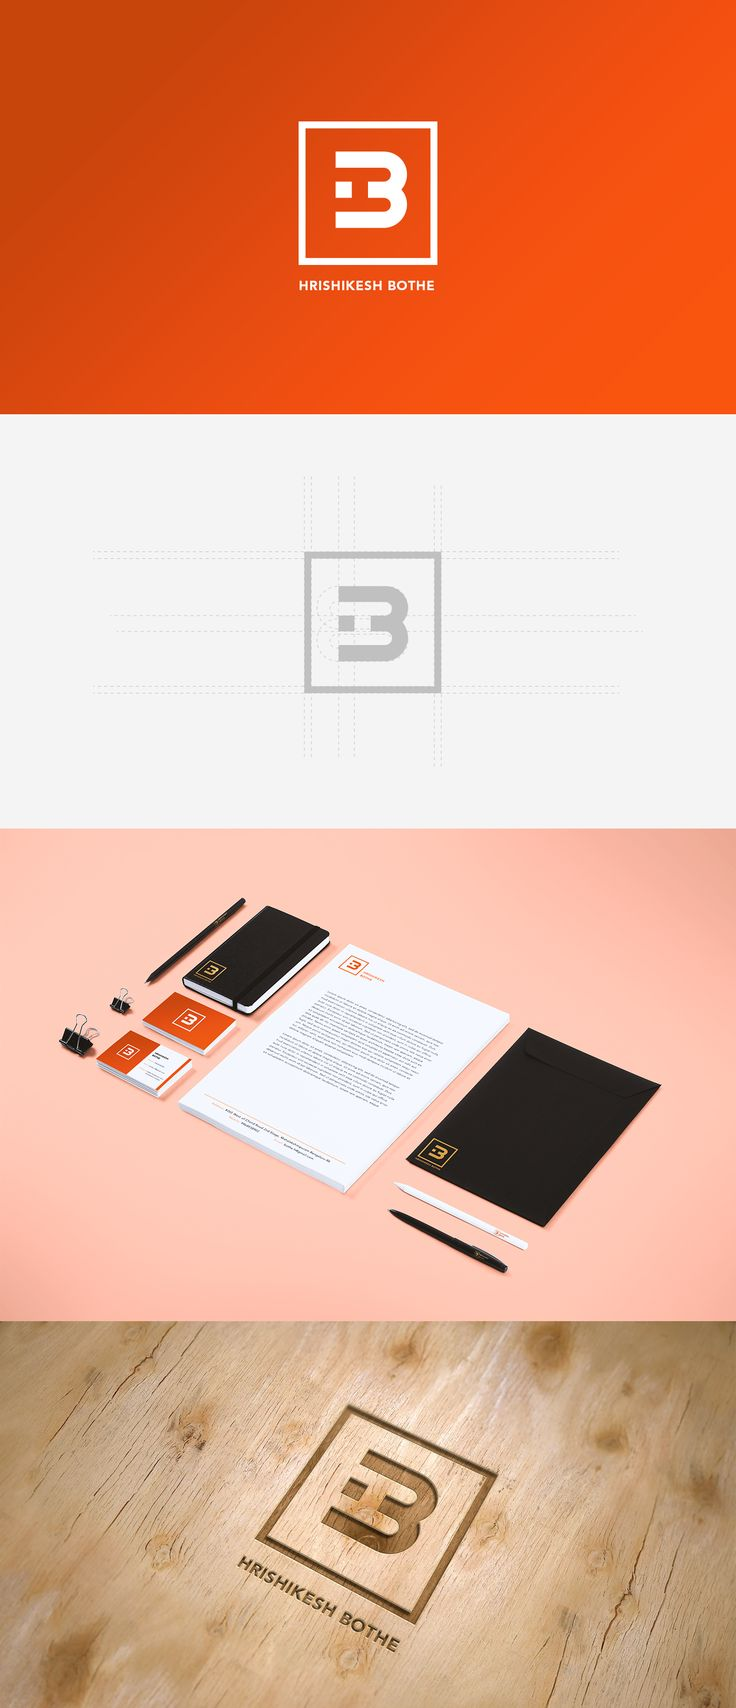 Self Branding on Behance